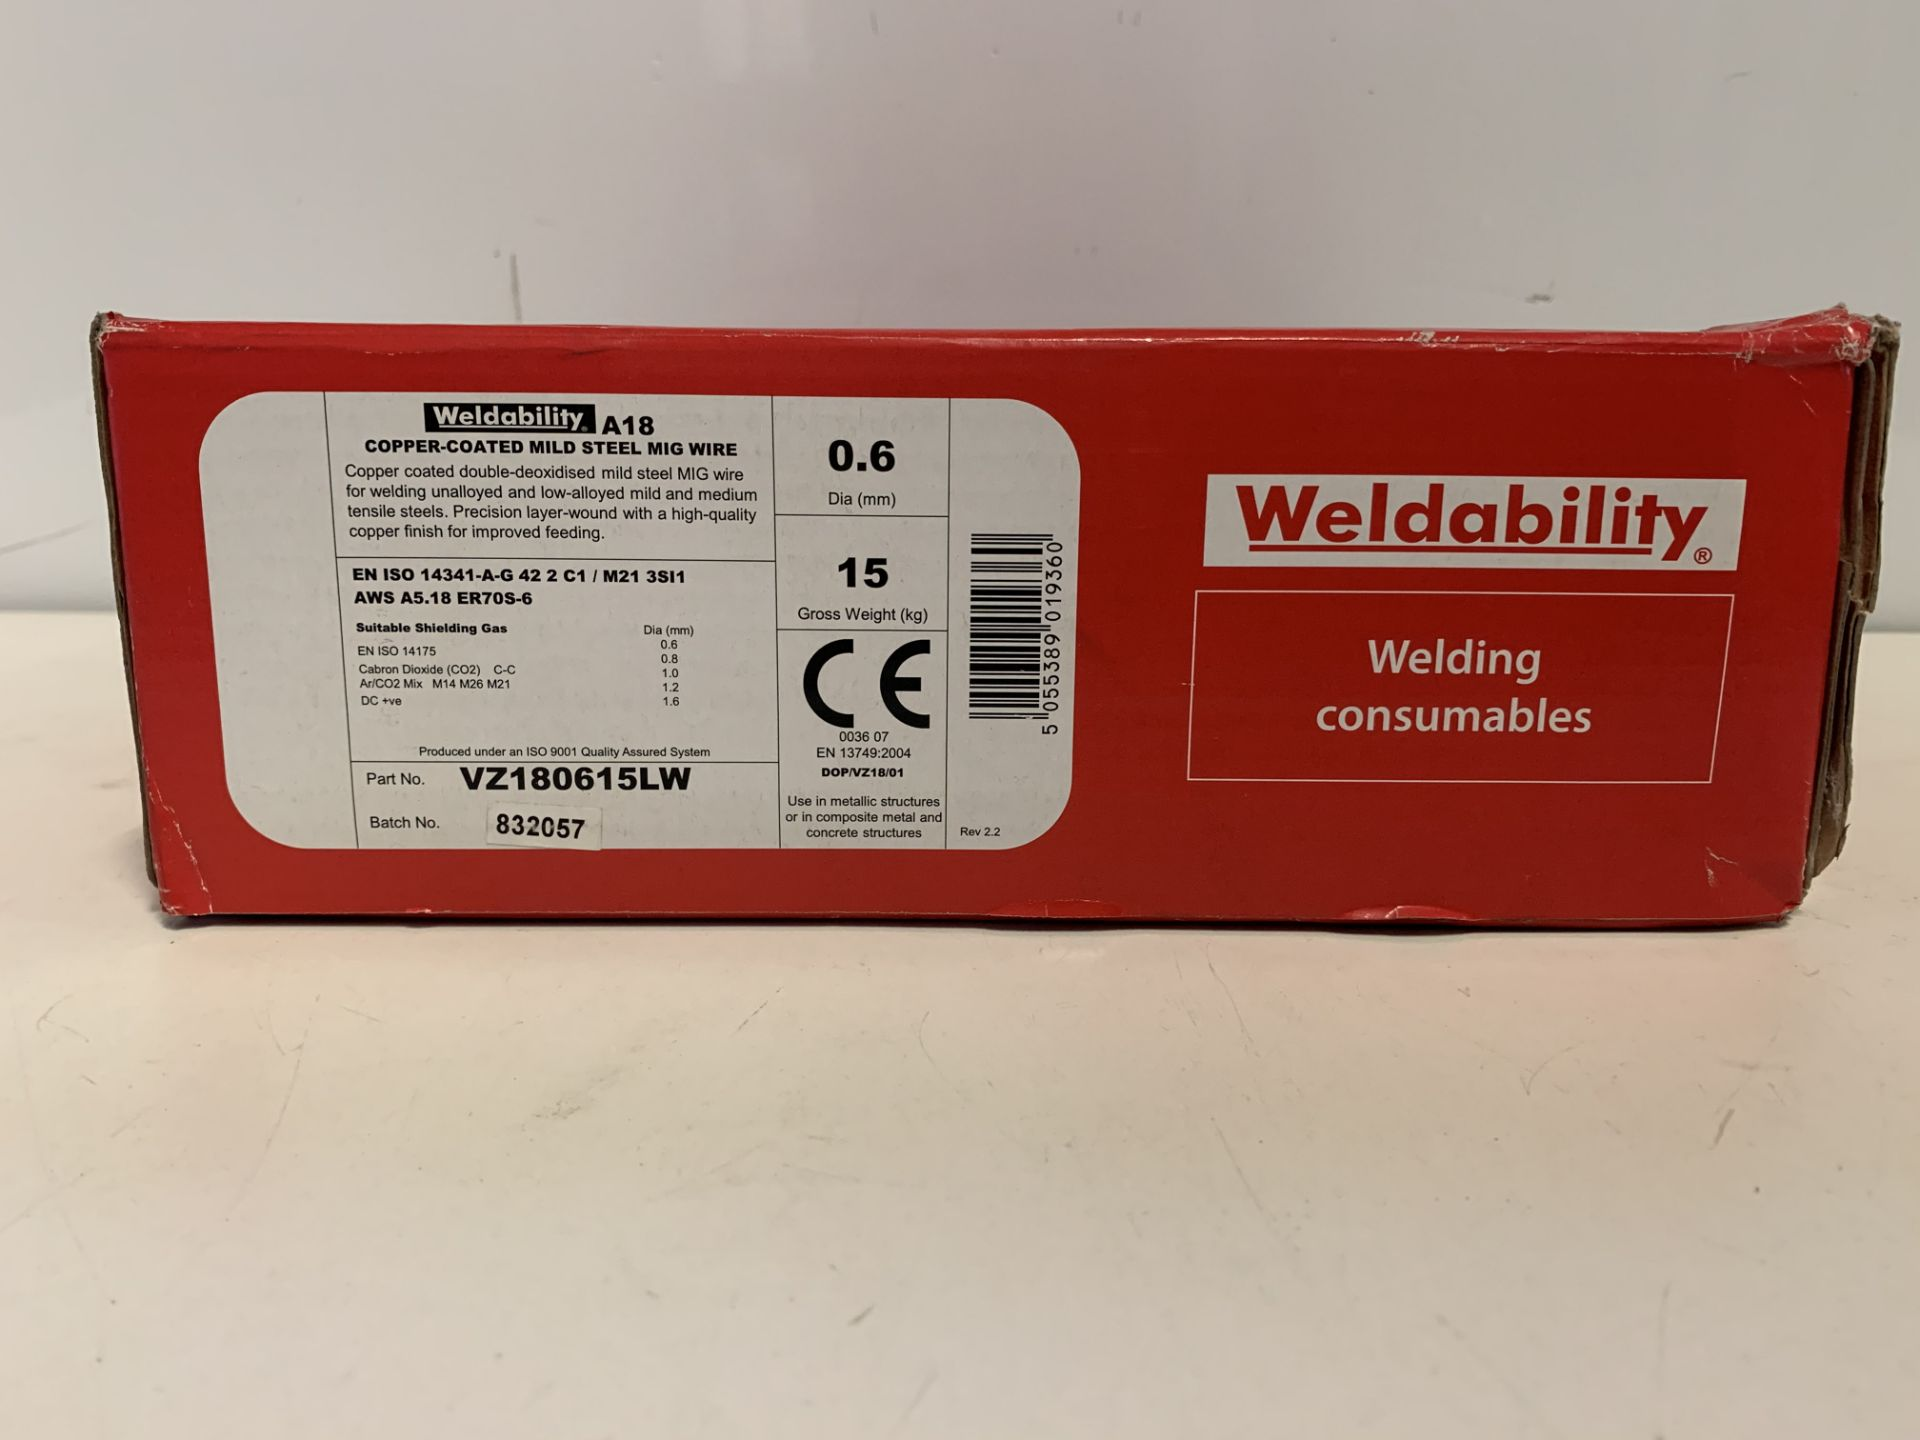 Lot 11 - 2 x 1WELDABILITY VZ180615LW SIF A18/G3SI1 MIG WIRE 0.6MM 15KG